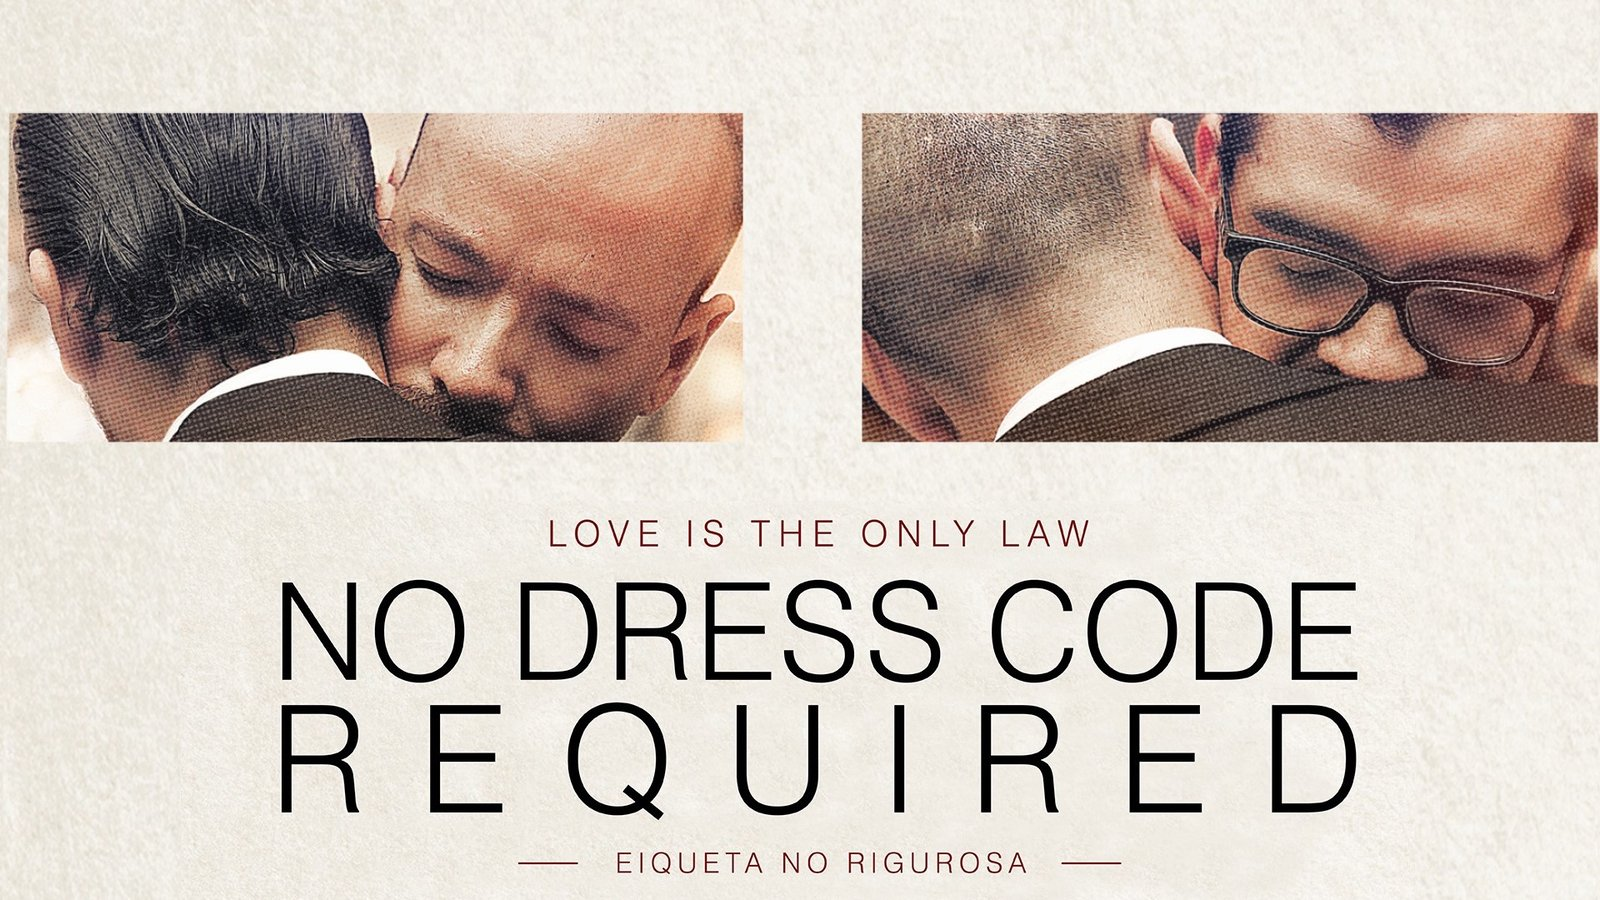 No Dress Code Required - A Same-Sex Couple in Mexico Fight for Equal Marriage Rights